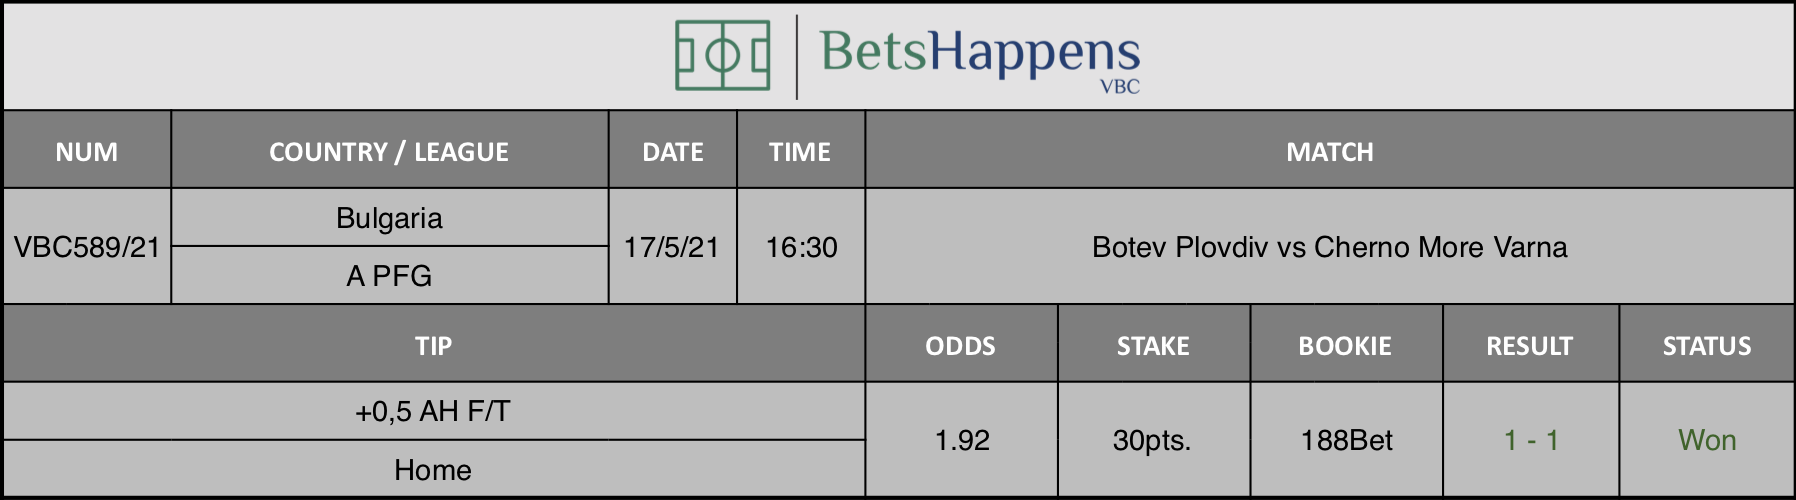 Results of our tip for the Botev Plovdiv vs Cherno More Varna match where +0,5 AH F/T  Home is recommended.